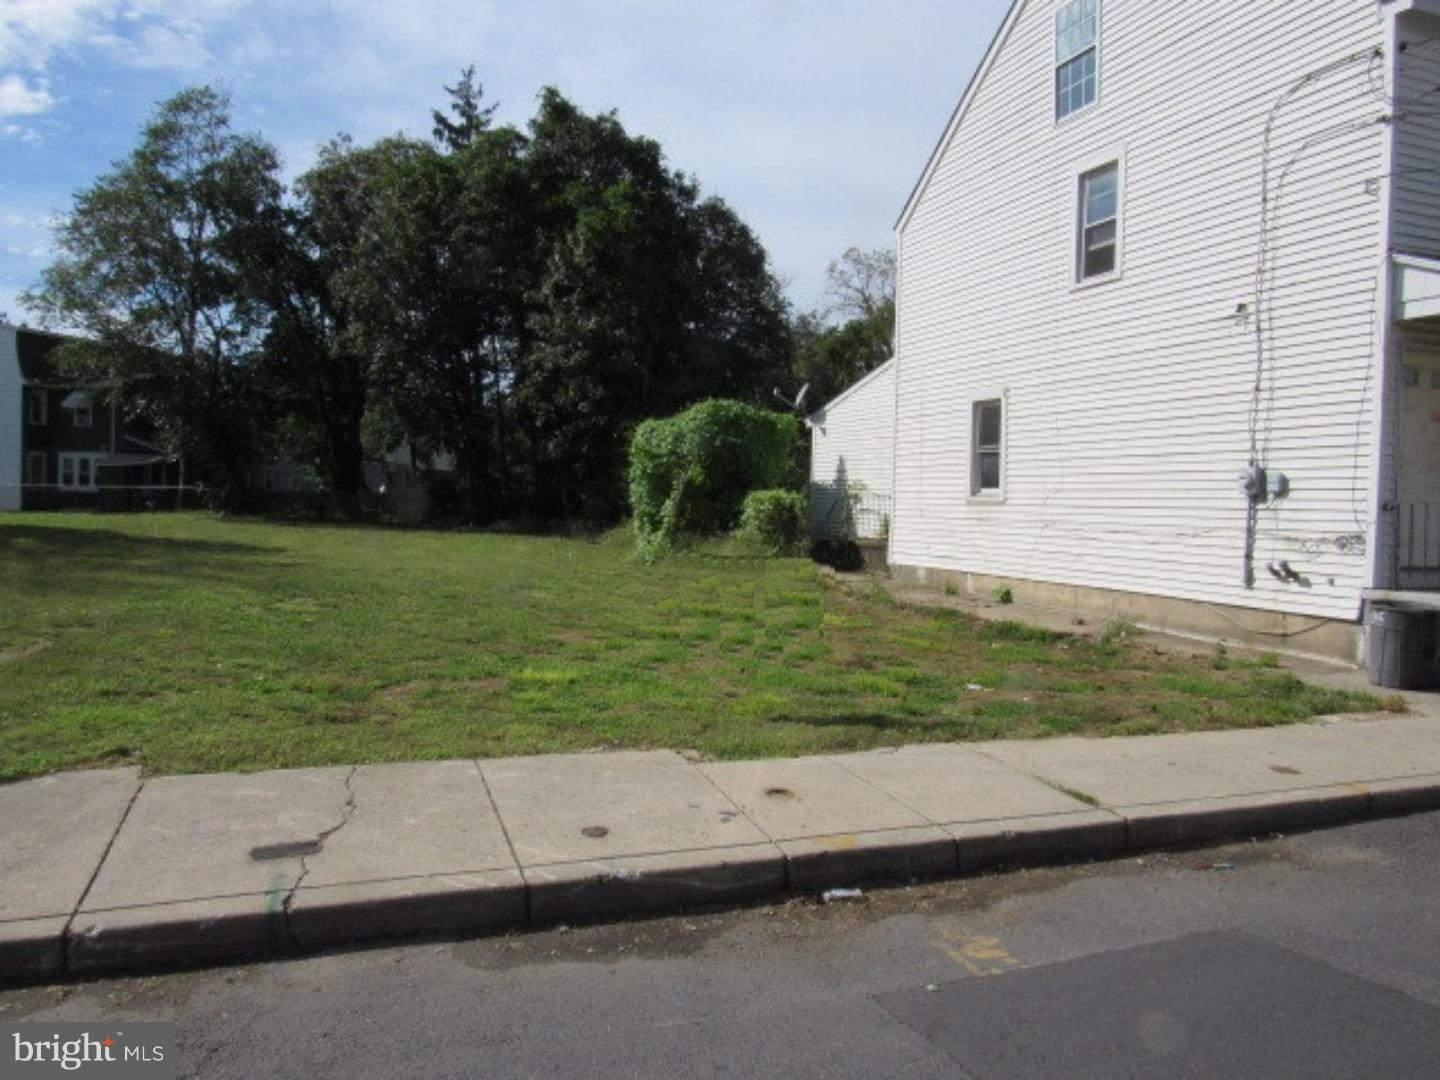 Land for Rent at 564 YORK Street Burlington, New Jersey 08016 United States